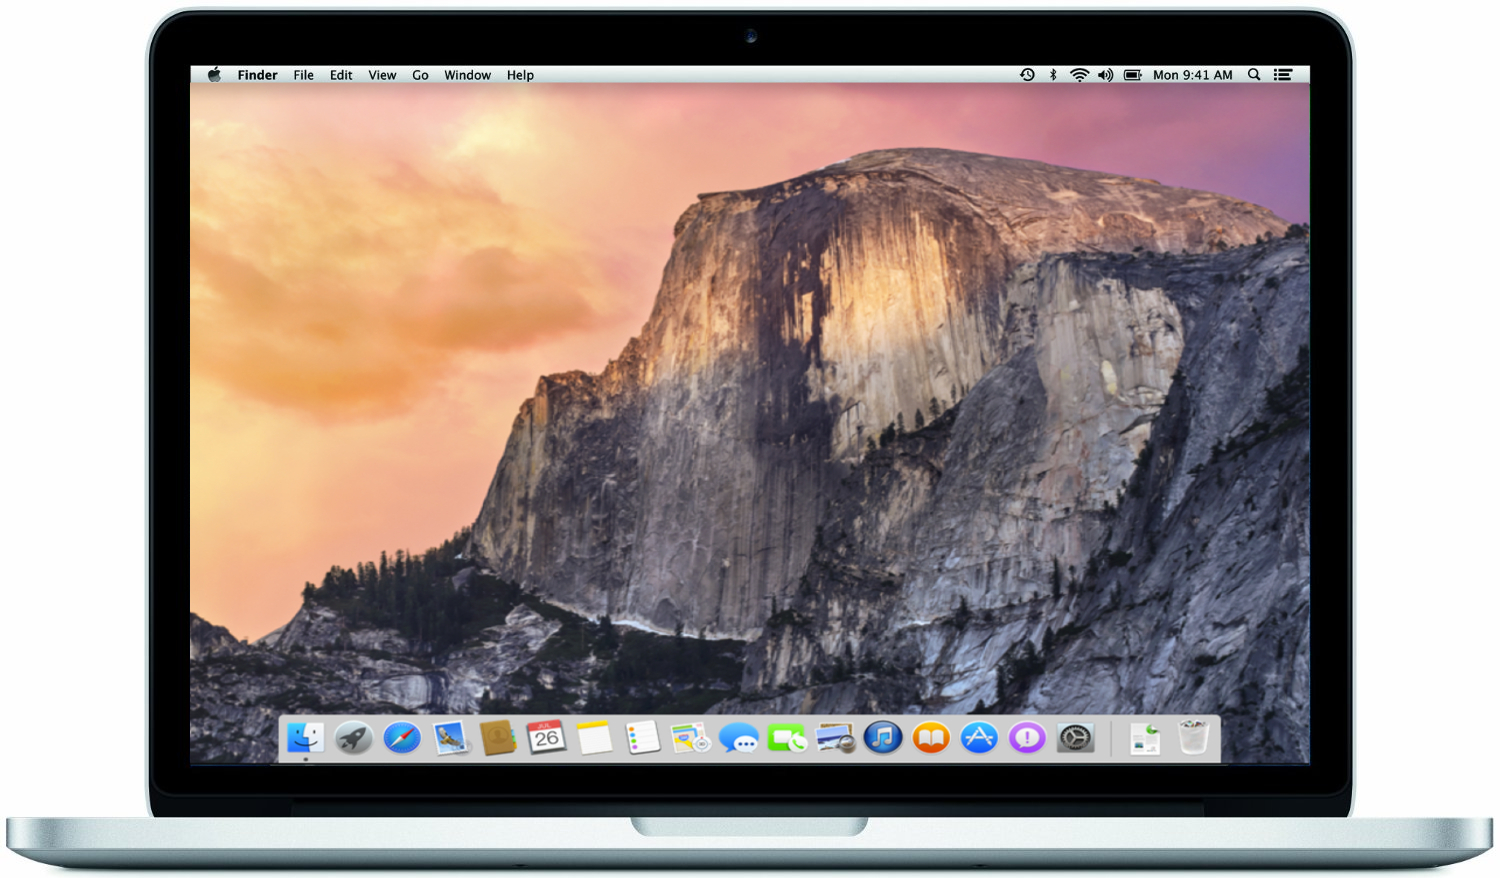 Apple MacBook Pro 13.3 (Retina Display) 2.7 GHz Intel Core i5 8 GB RAM 128 GB PCIe SSD [Early 2015]